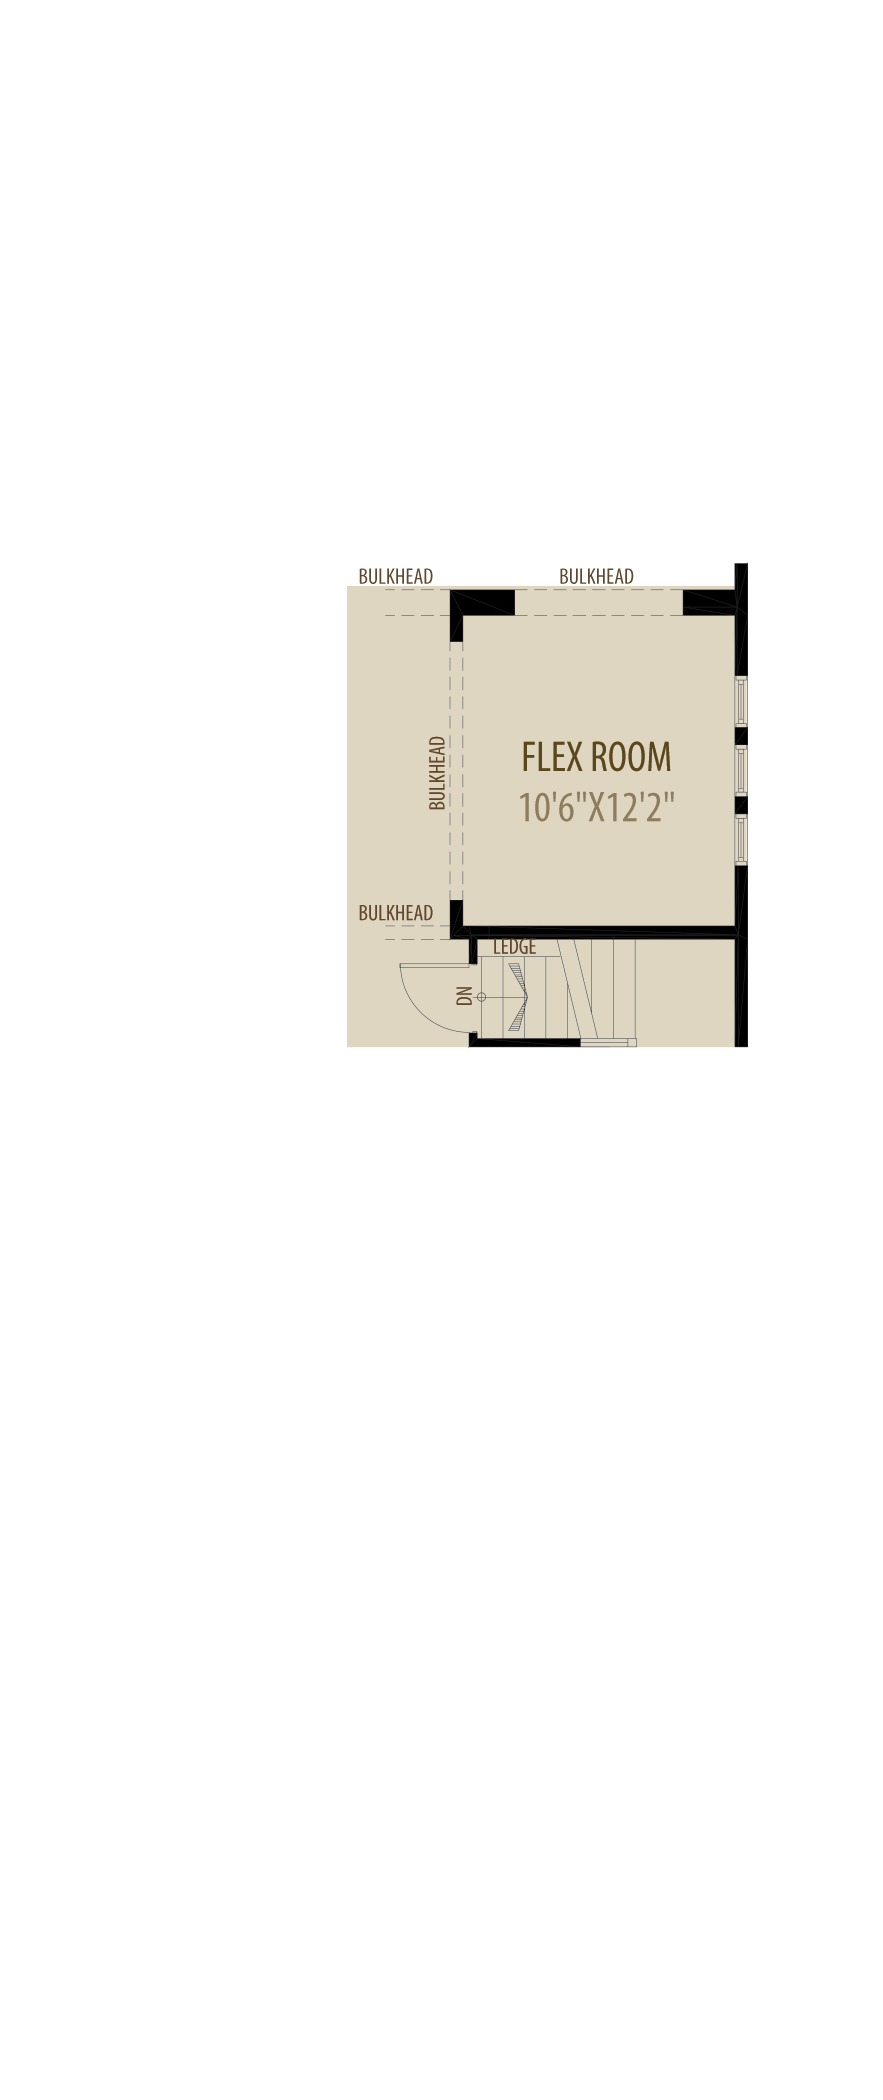 Flex Room (Adds 132 Sq Ft)